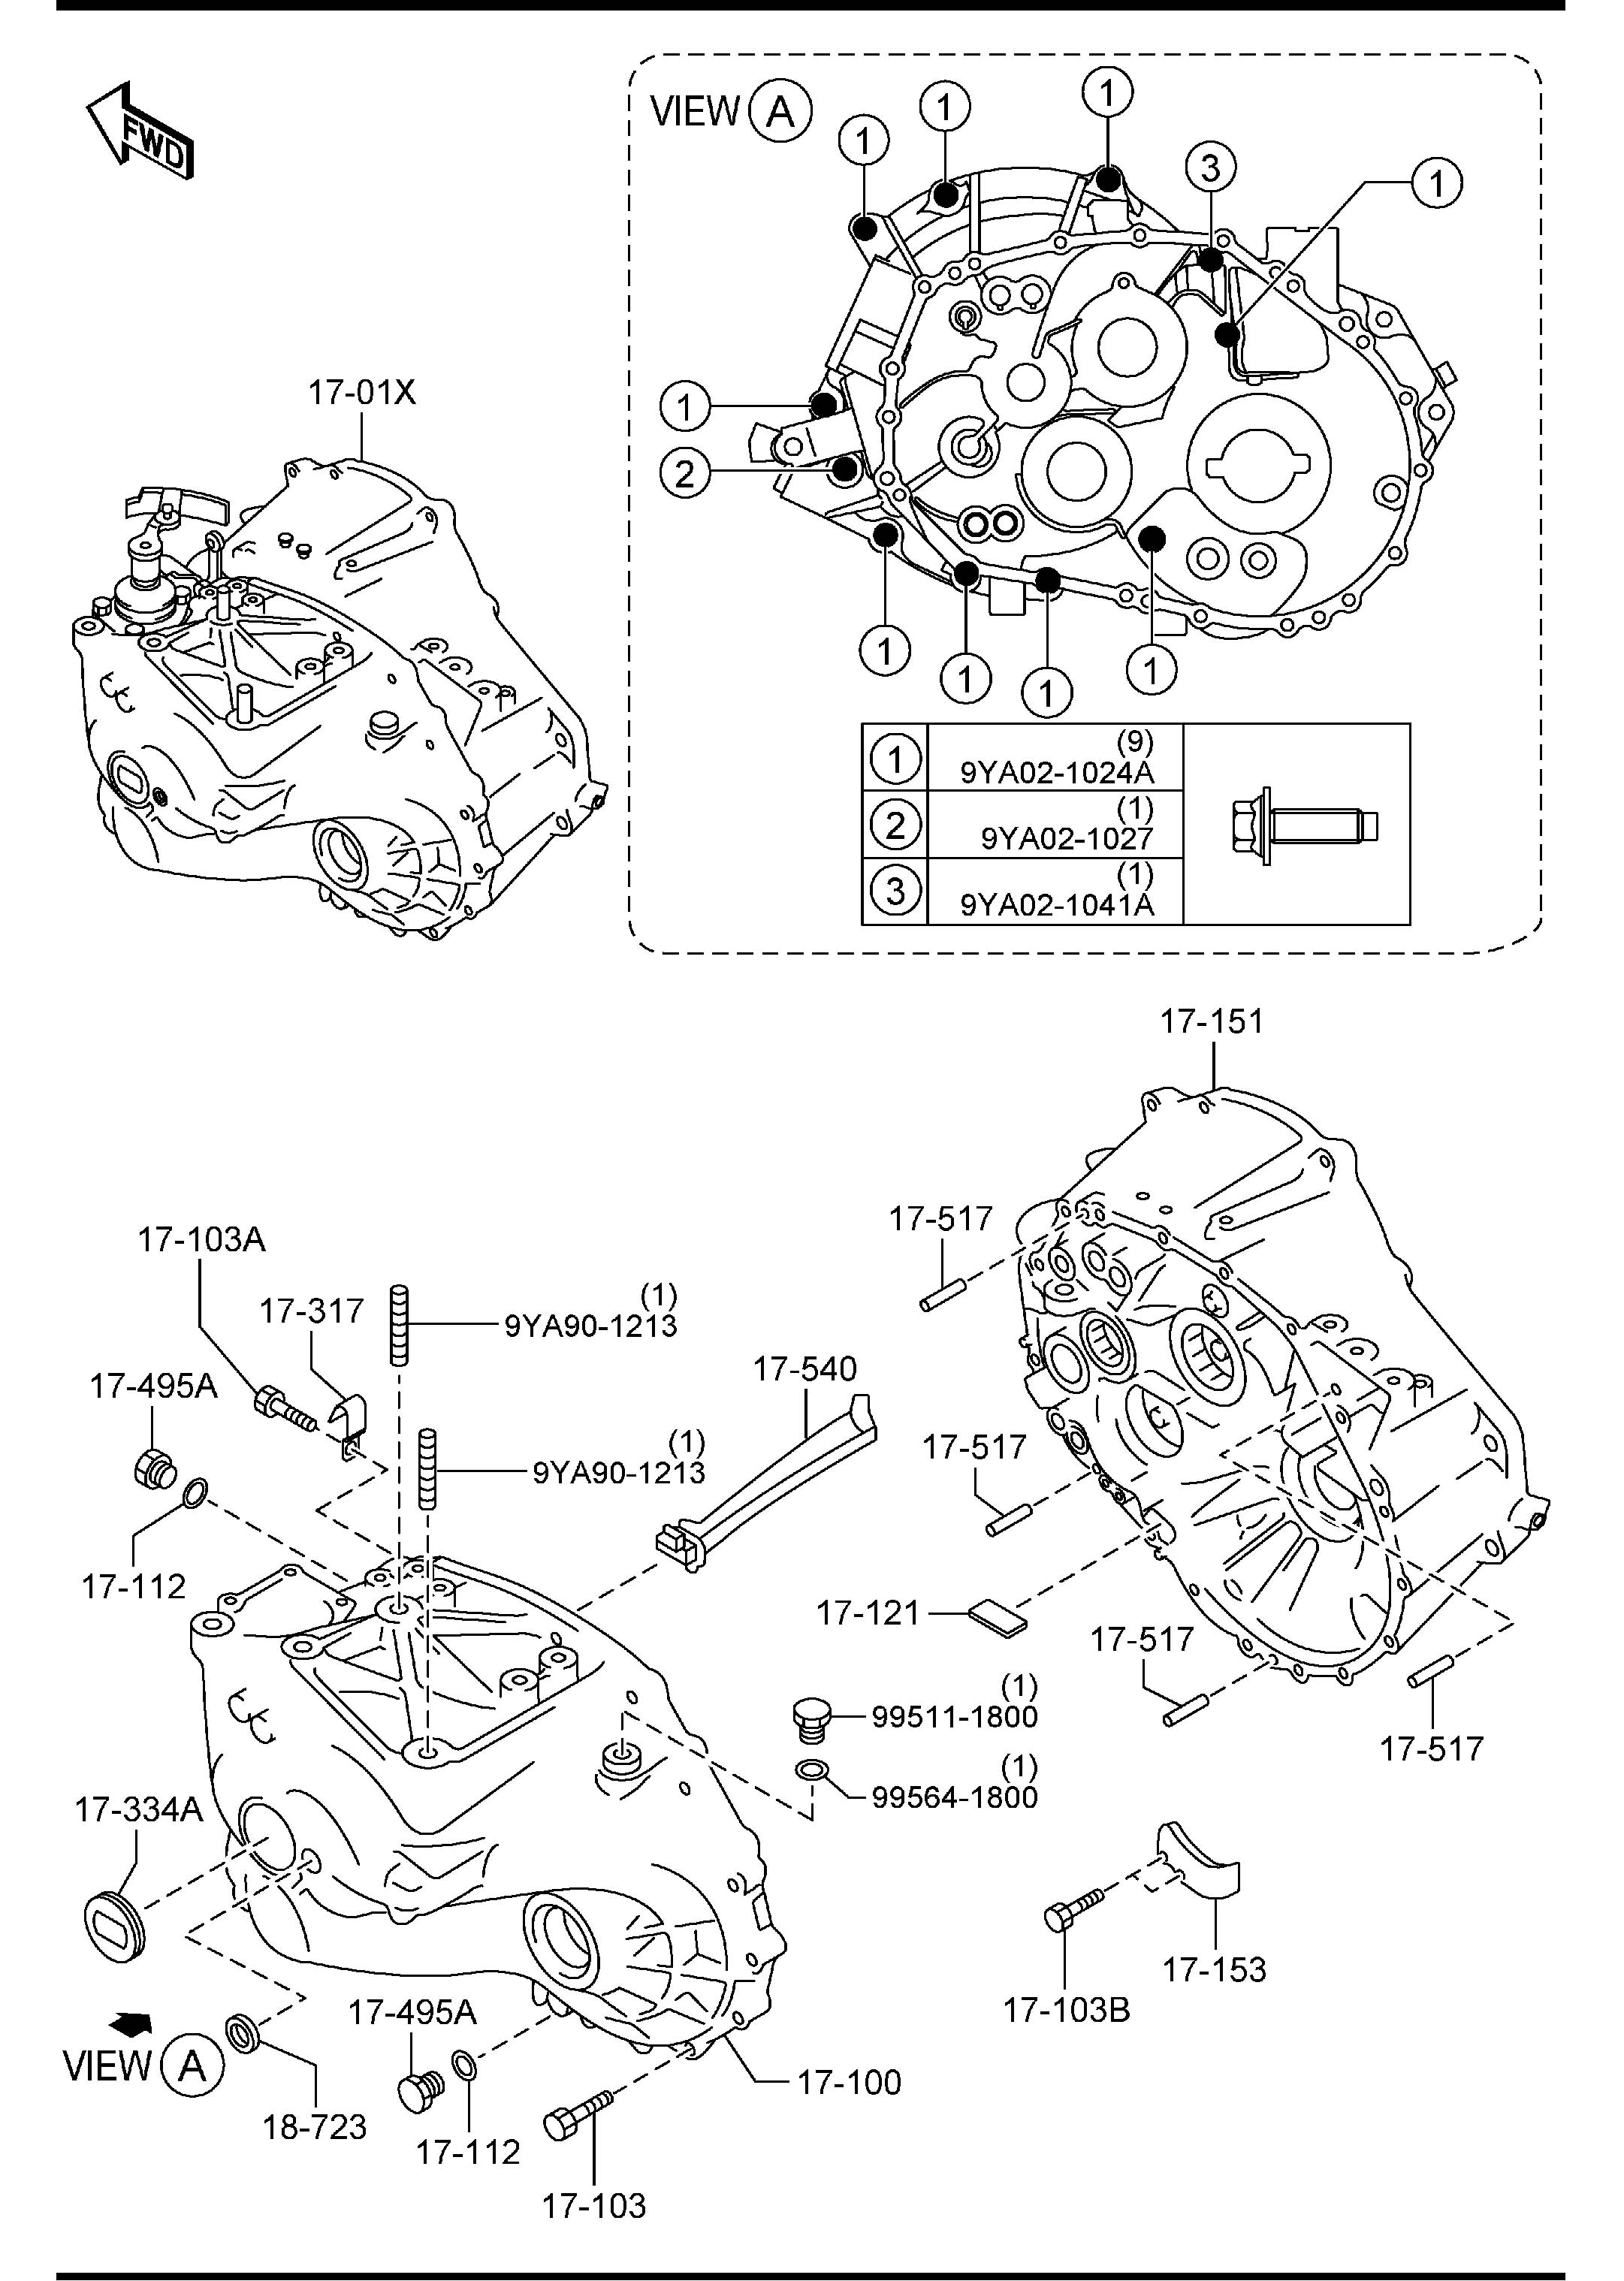 2010 mazda 3 parts diagram acdelco one wire alternator wiring transmission oil change on ms3 2004 to 2016